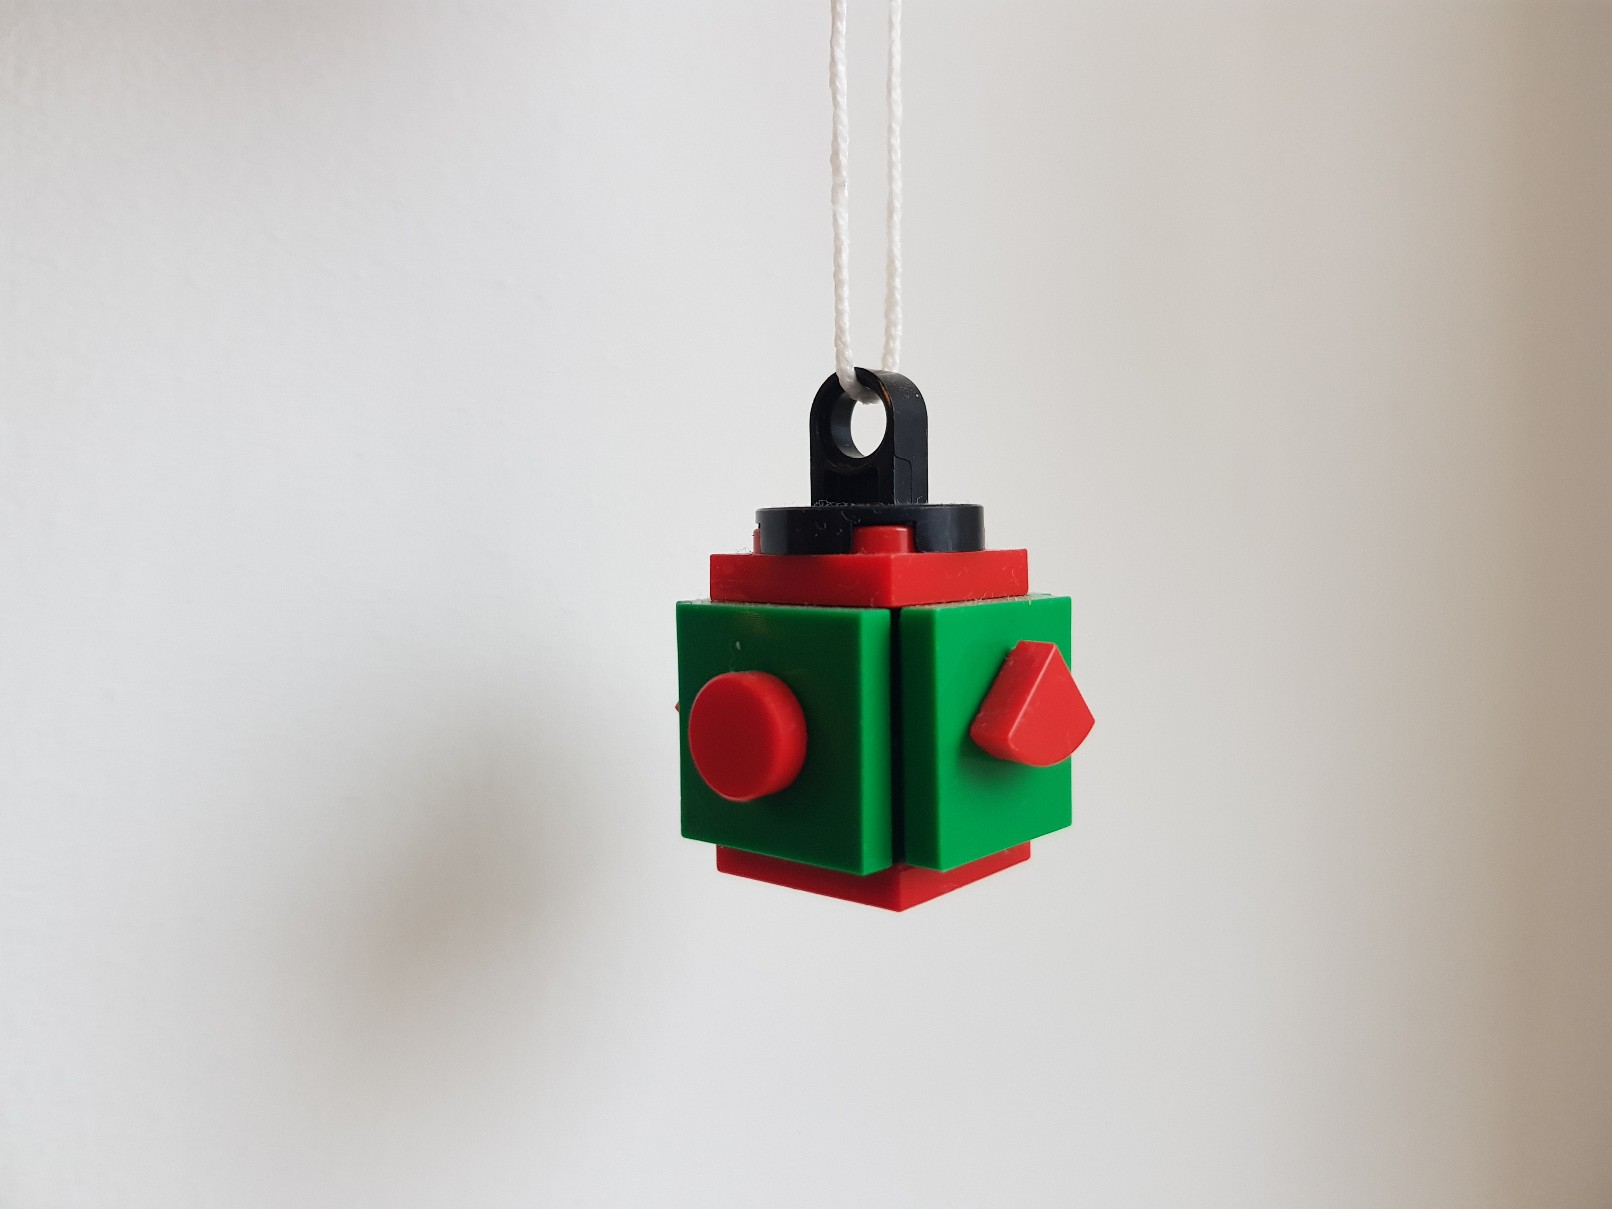 lego moc christmas baubles ornament red green small ball 2